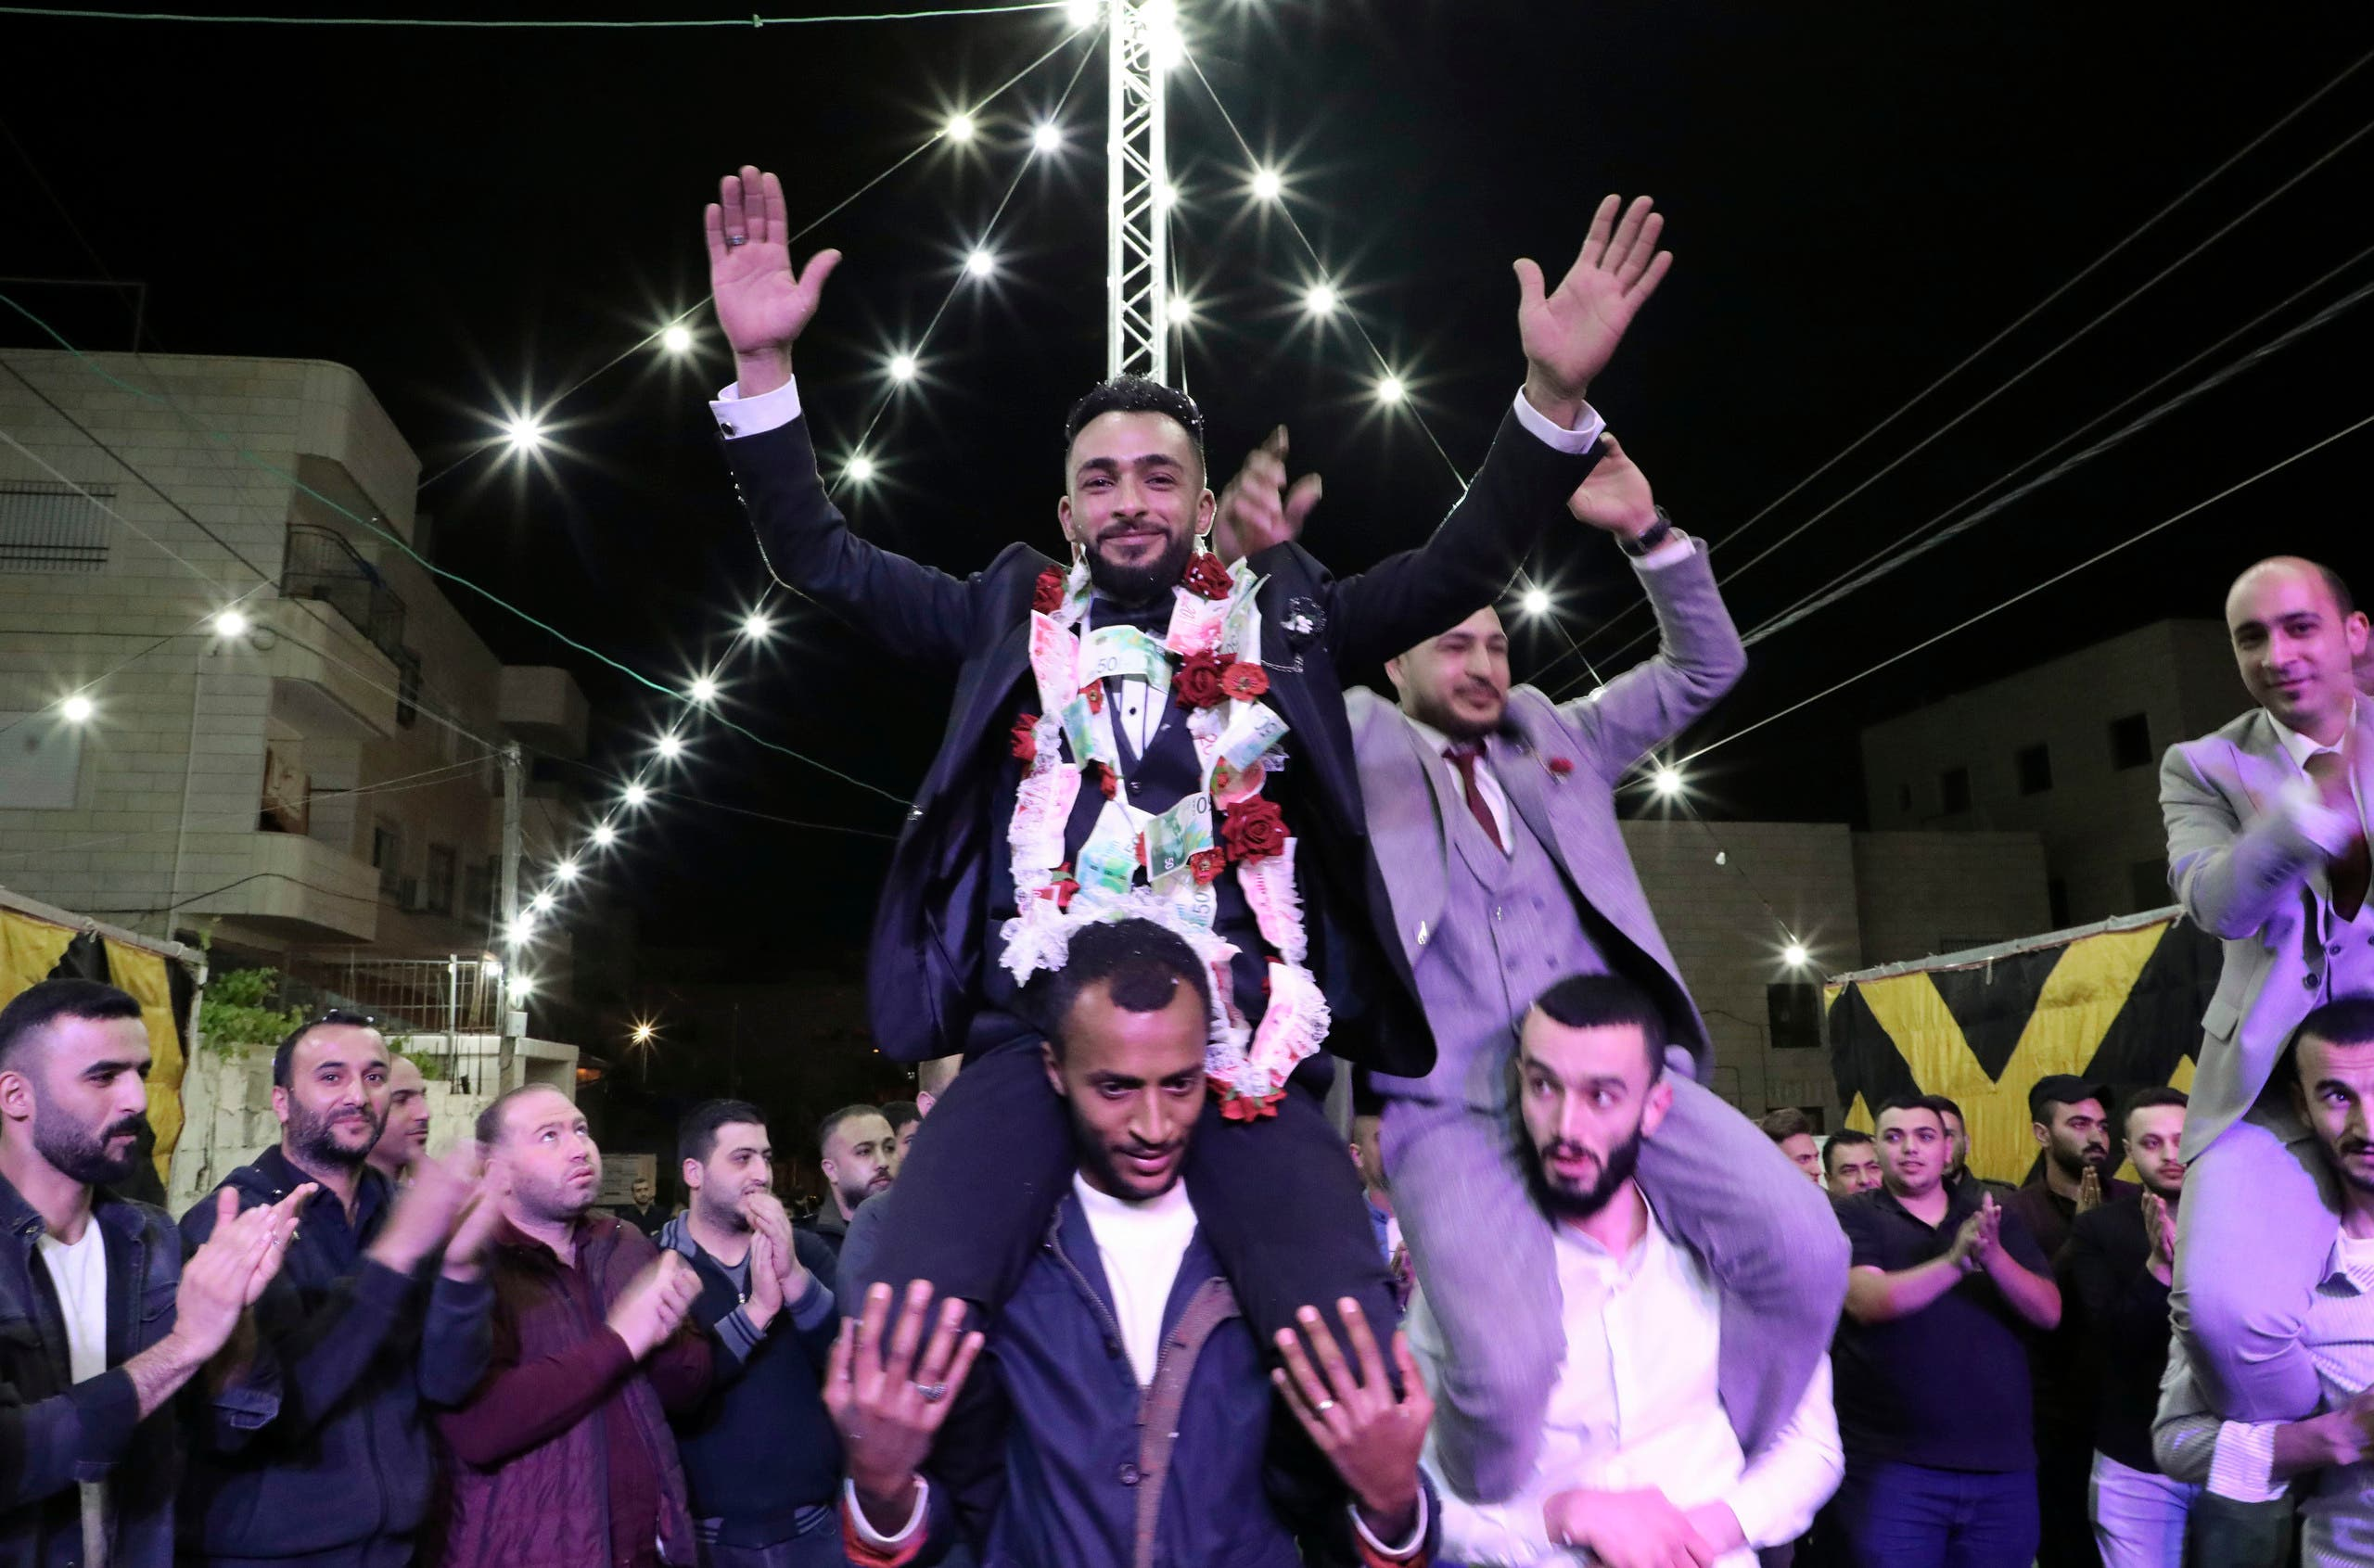 Palestinian groom Basel Abu al-Halawa celebrates with friends and family during a belated wedding party in front of his house in the West Bank city of Hebron. (AFP)